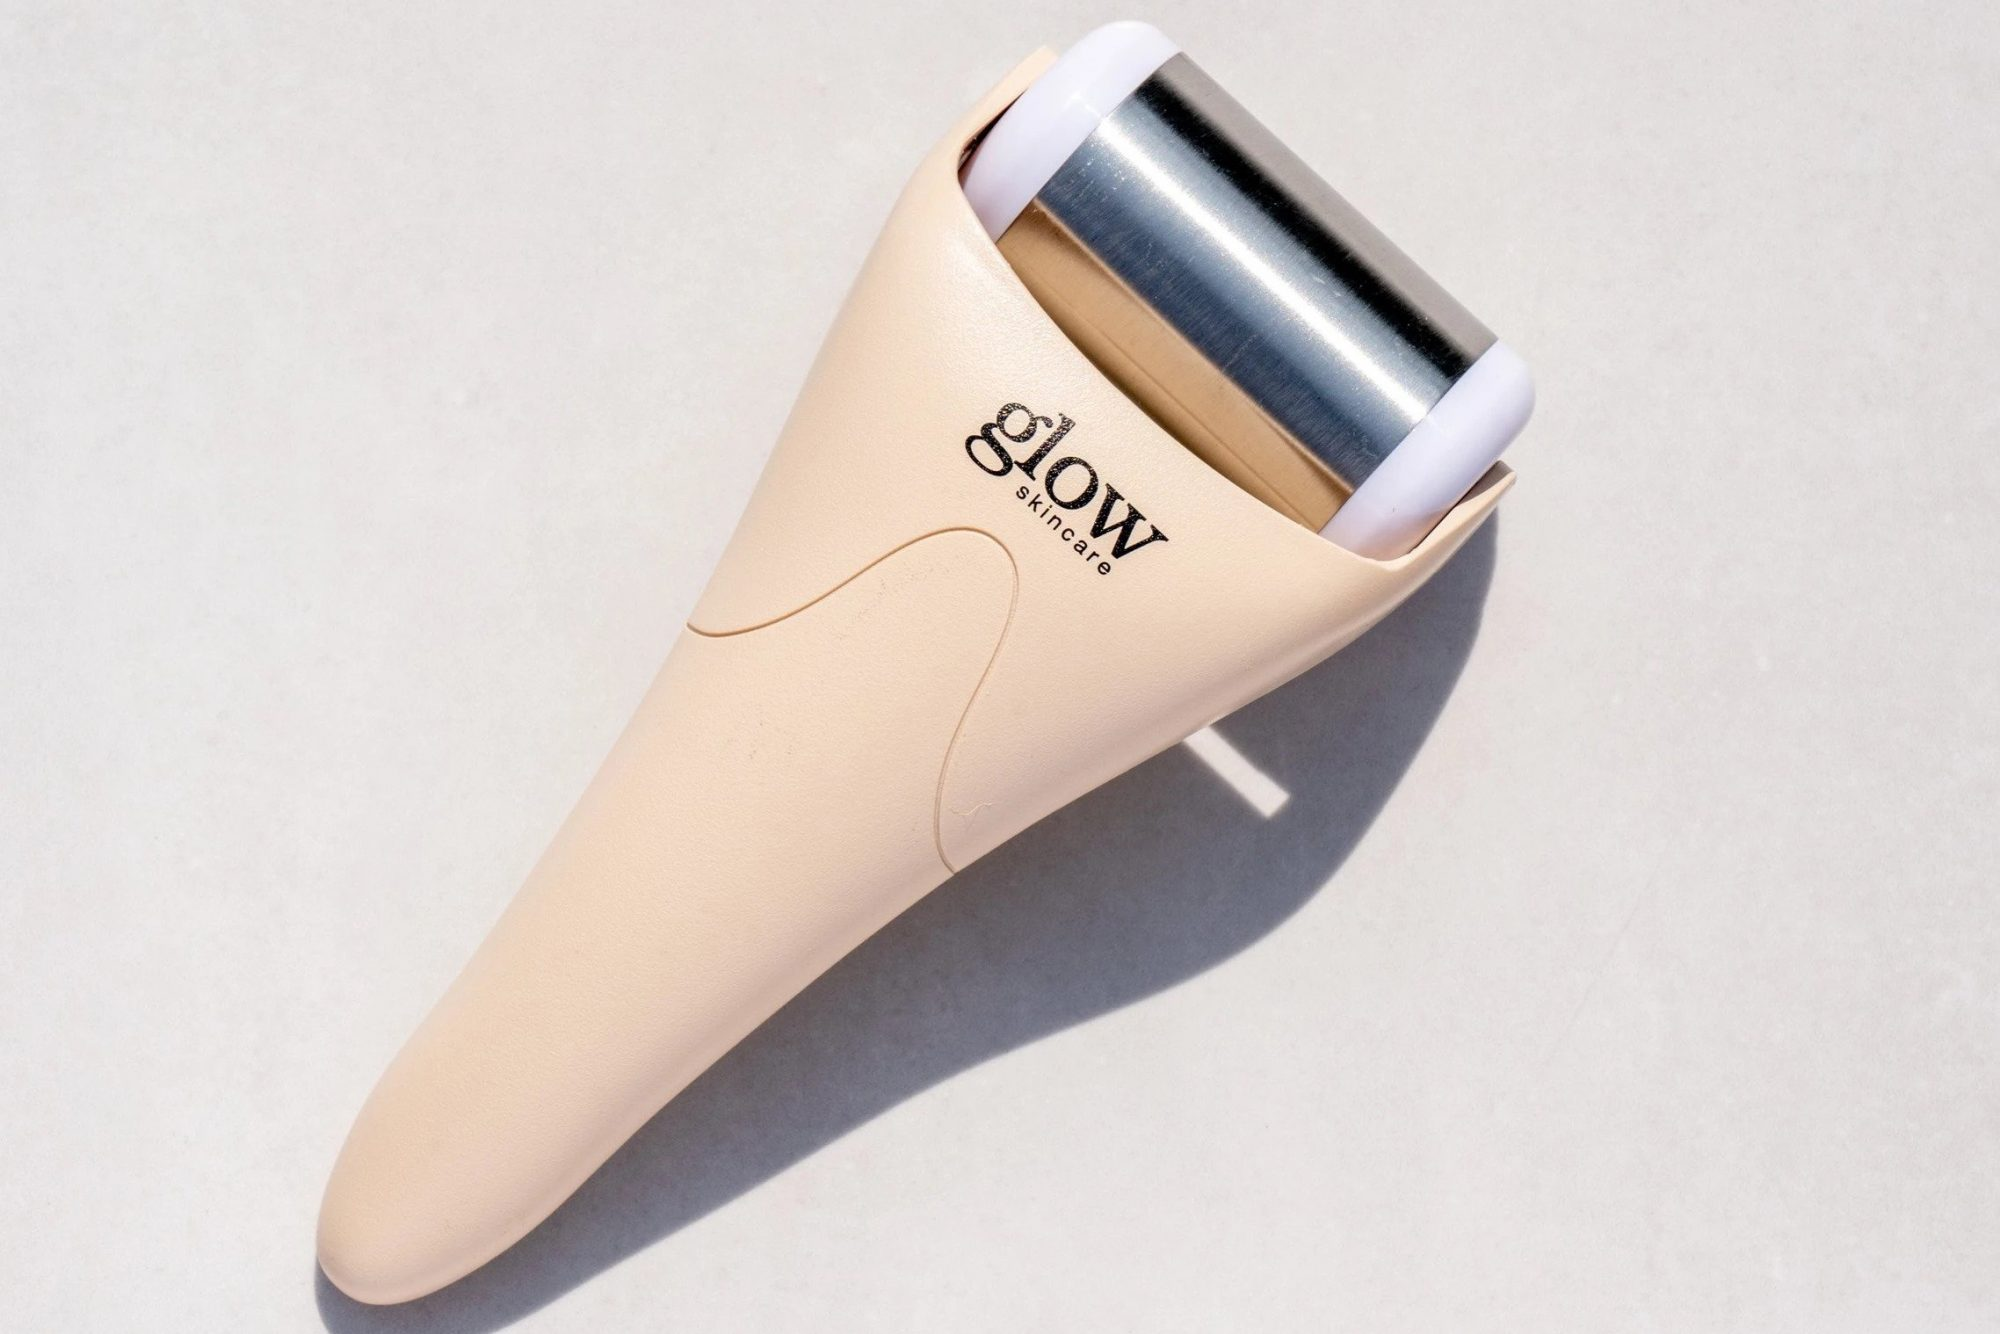 Glow Skincare Cold Roller